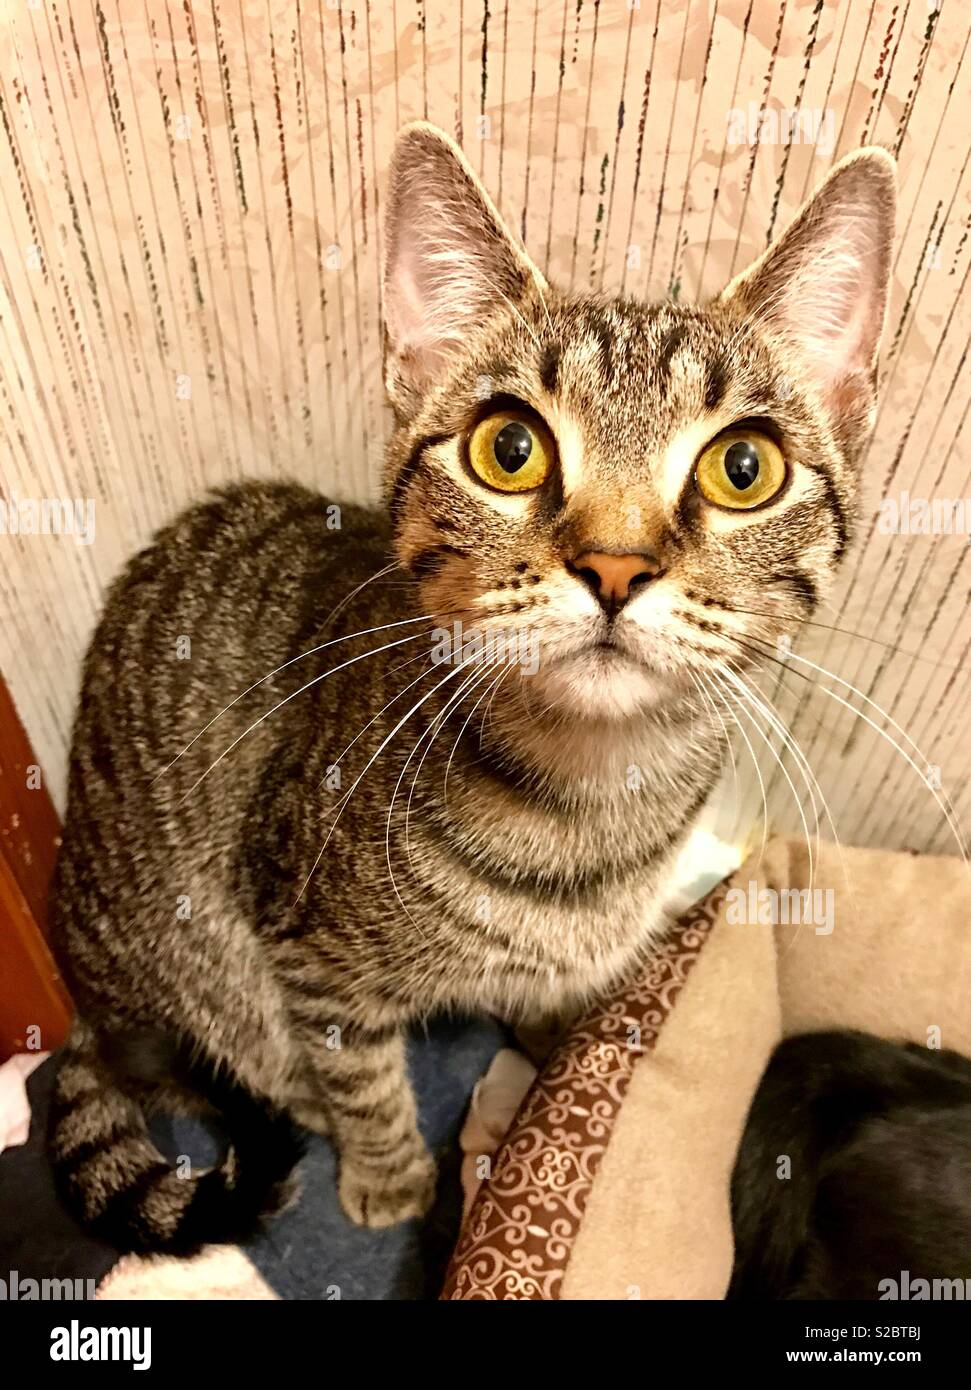 Portrait Of Beautiful Gold Eyed Domestic Shorthair Tabby Cat Stock Photo Alamy